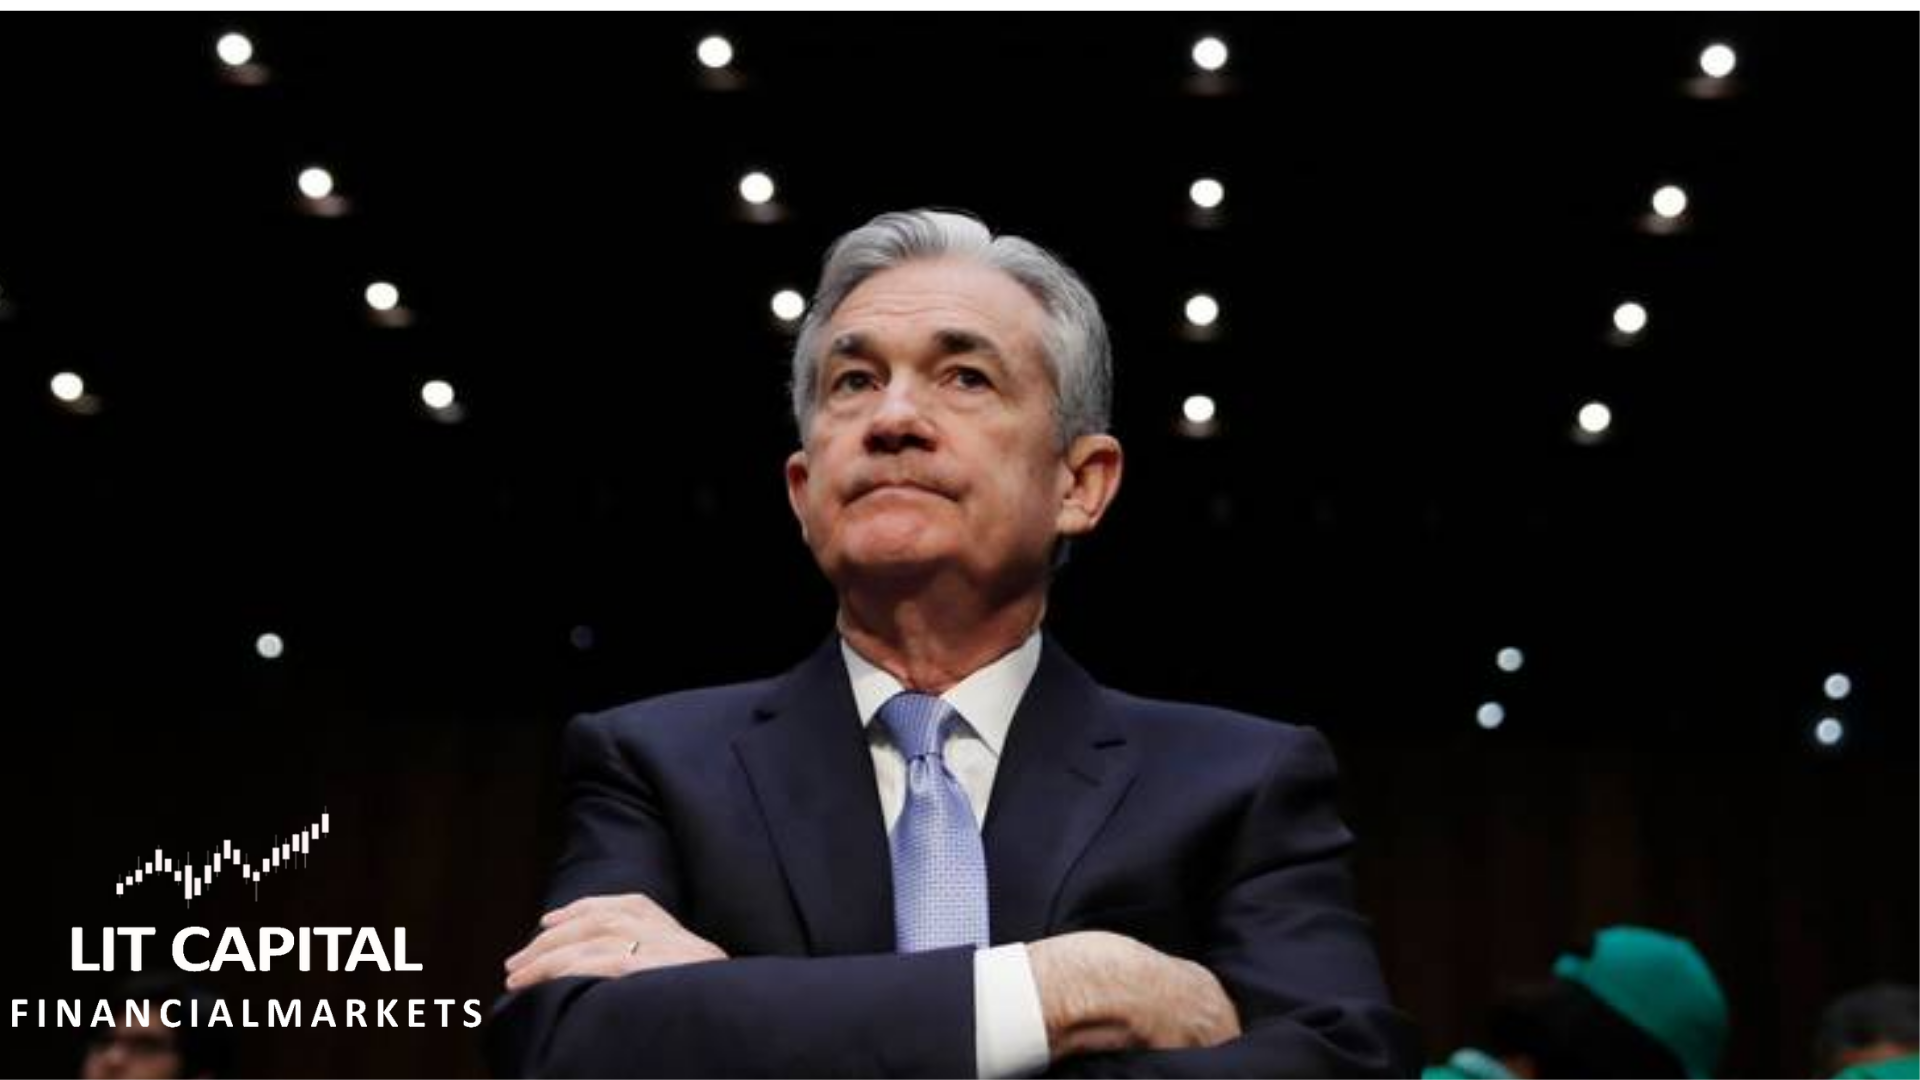 Fed Acknowledges Long Road To Economic Recovery